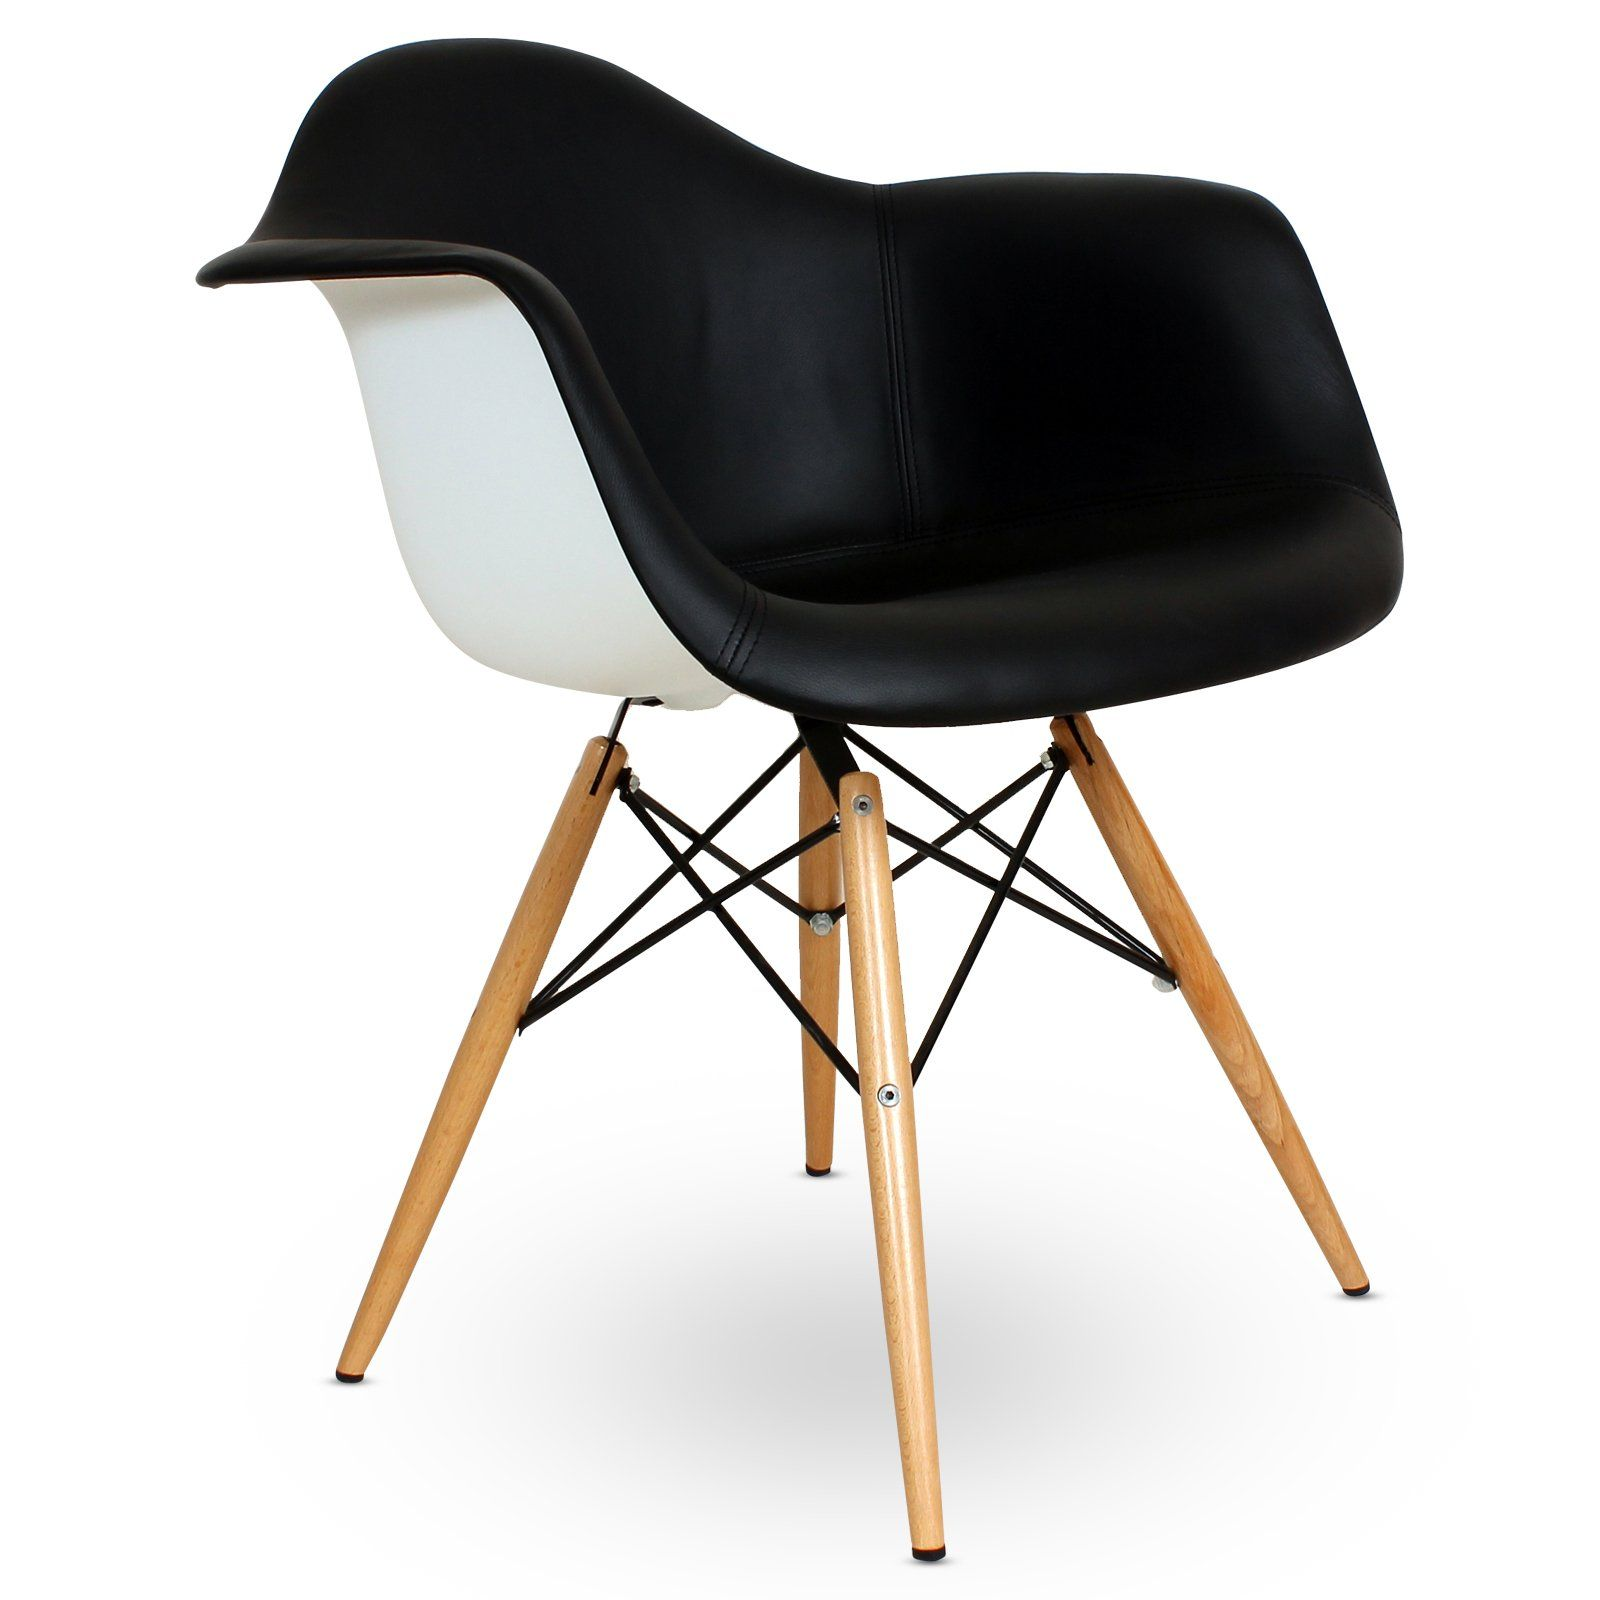 $152 Vinyl Covered Shell Chair with Wood Legs at the Foundary